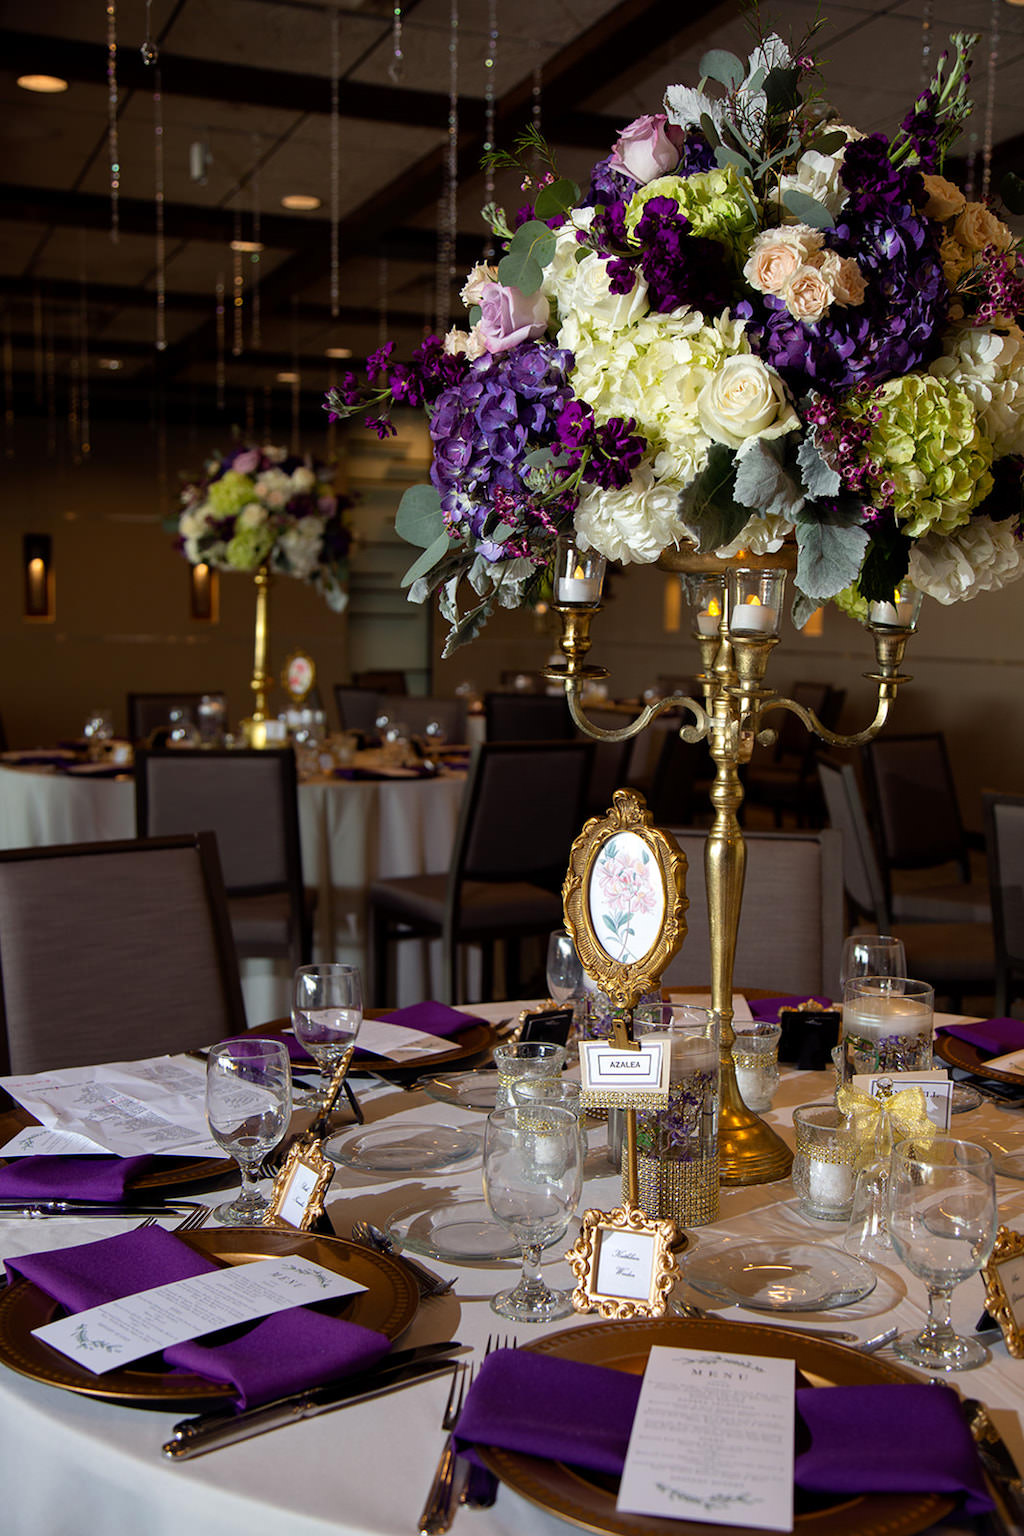 Elegant, Classic Vintage Garden Inspired Wedding Reception Decor, Tall Centerpieces, Gold Candelabra, Lilac, Purple, Green Hydrangeas, Blush Pink and Greenery Floral Arrangement, White Table Linen, Purple Napkins, Vintage Gold Frame Place Cards, Crystals Hanging From Ceiling | Sarasota Wedding Planner Laura Detwiler Events